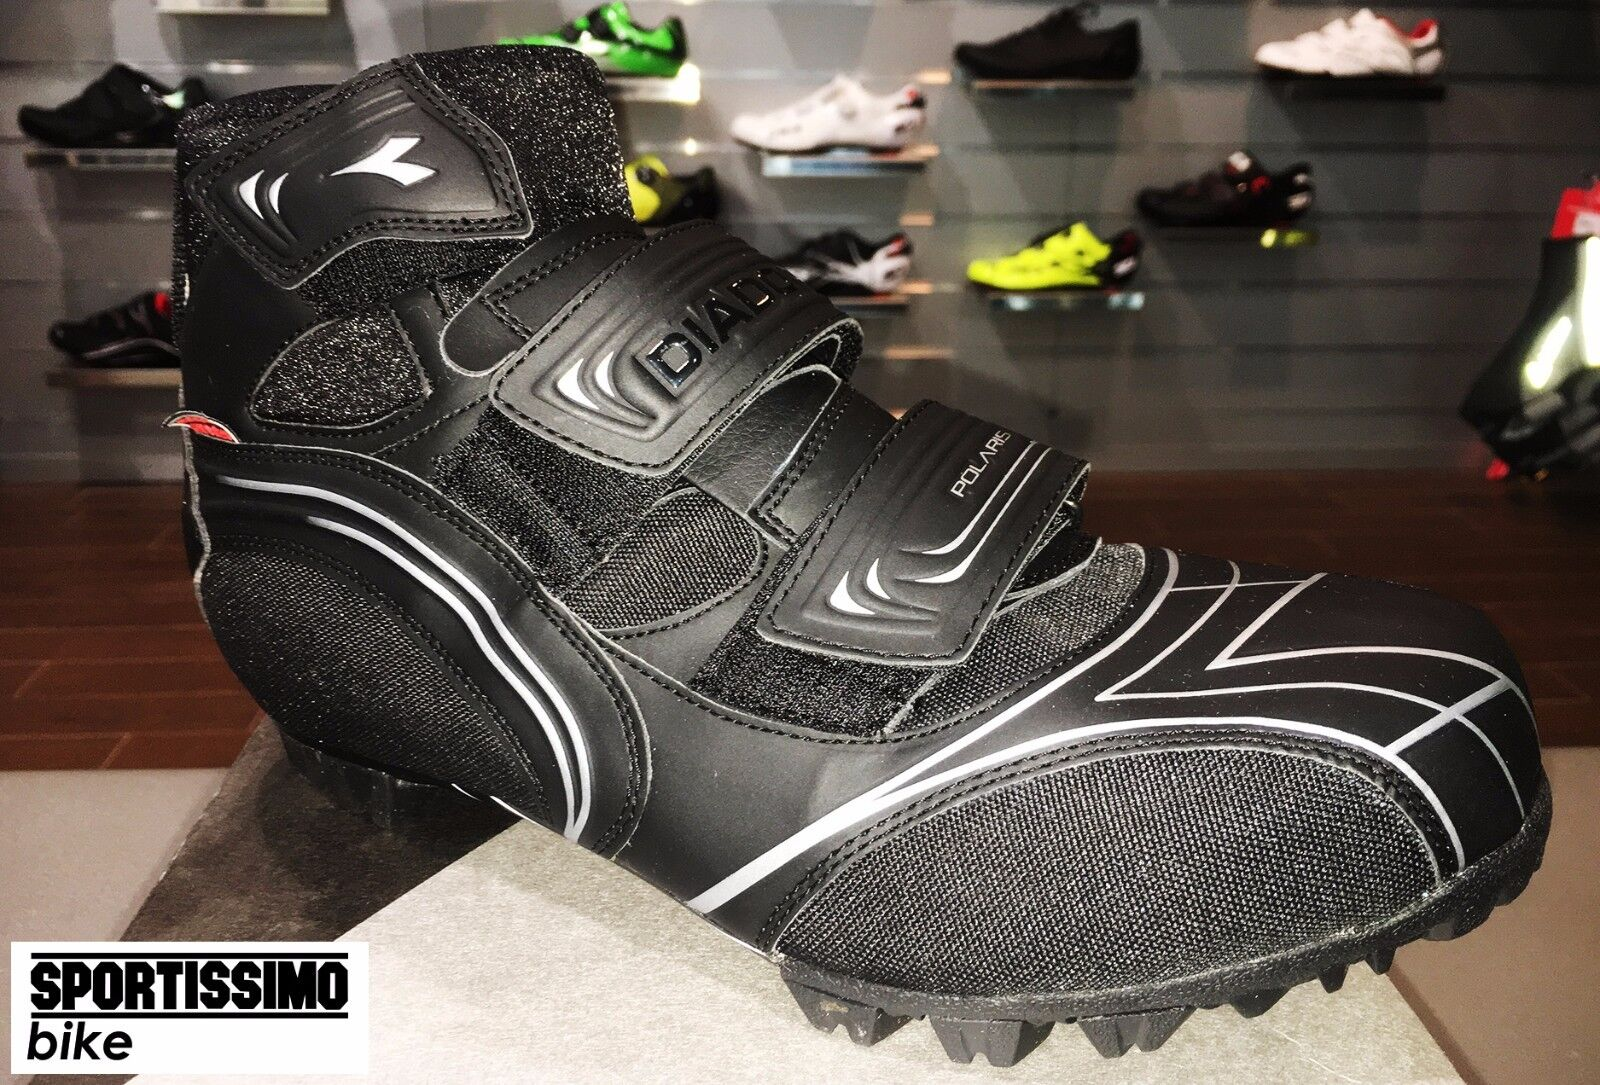 OFFERTISSIMA shoes DIADORA POLARIS MTB (MISURA 44)